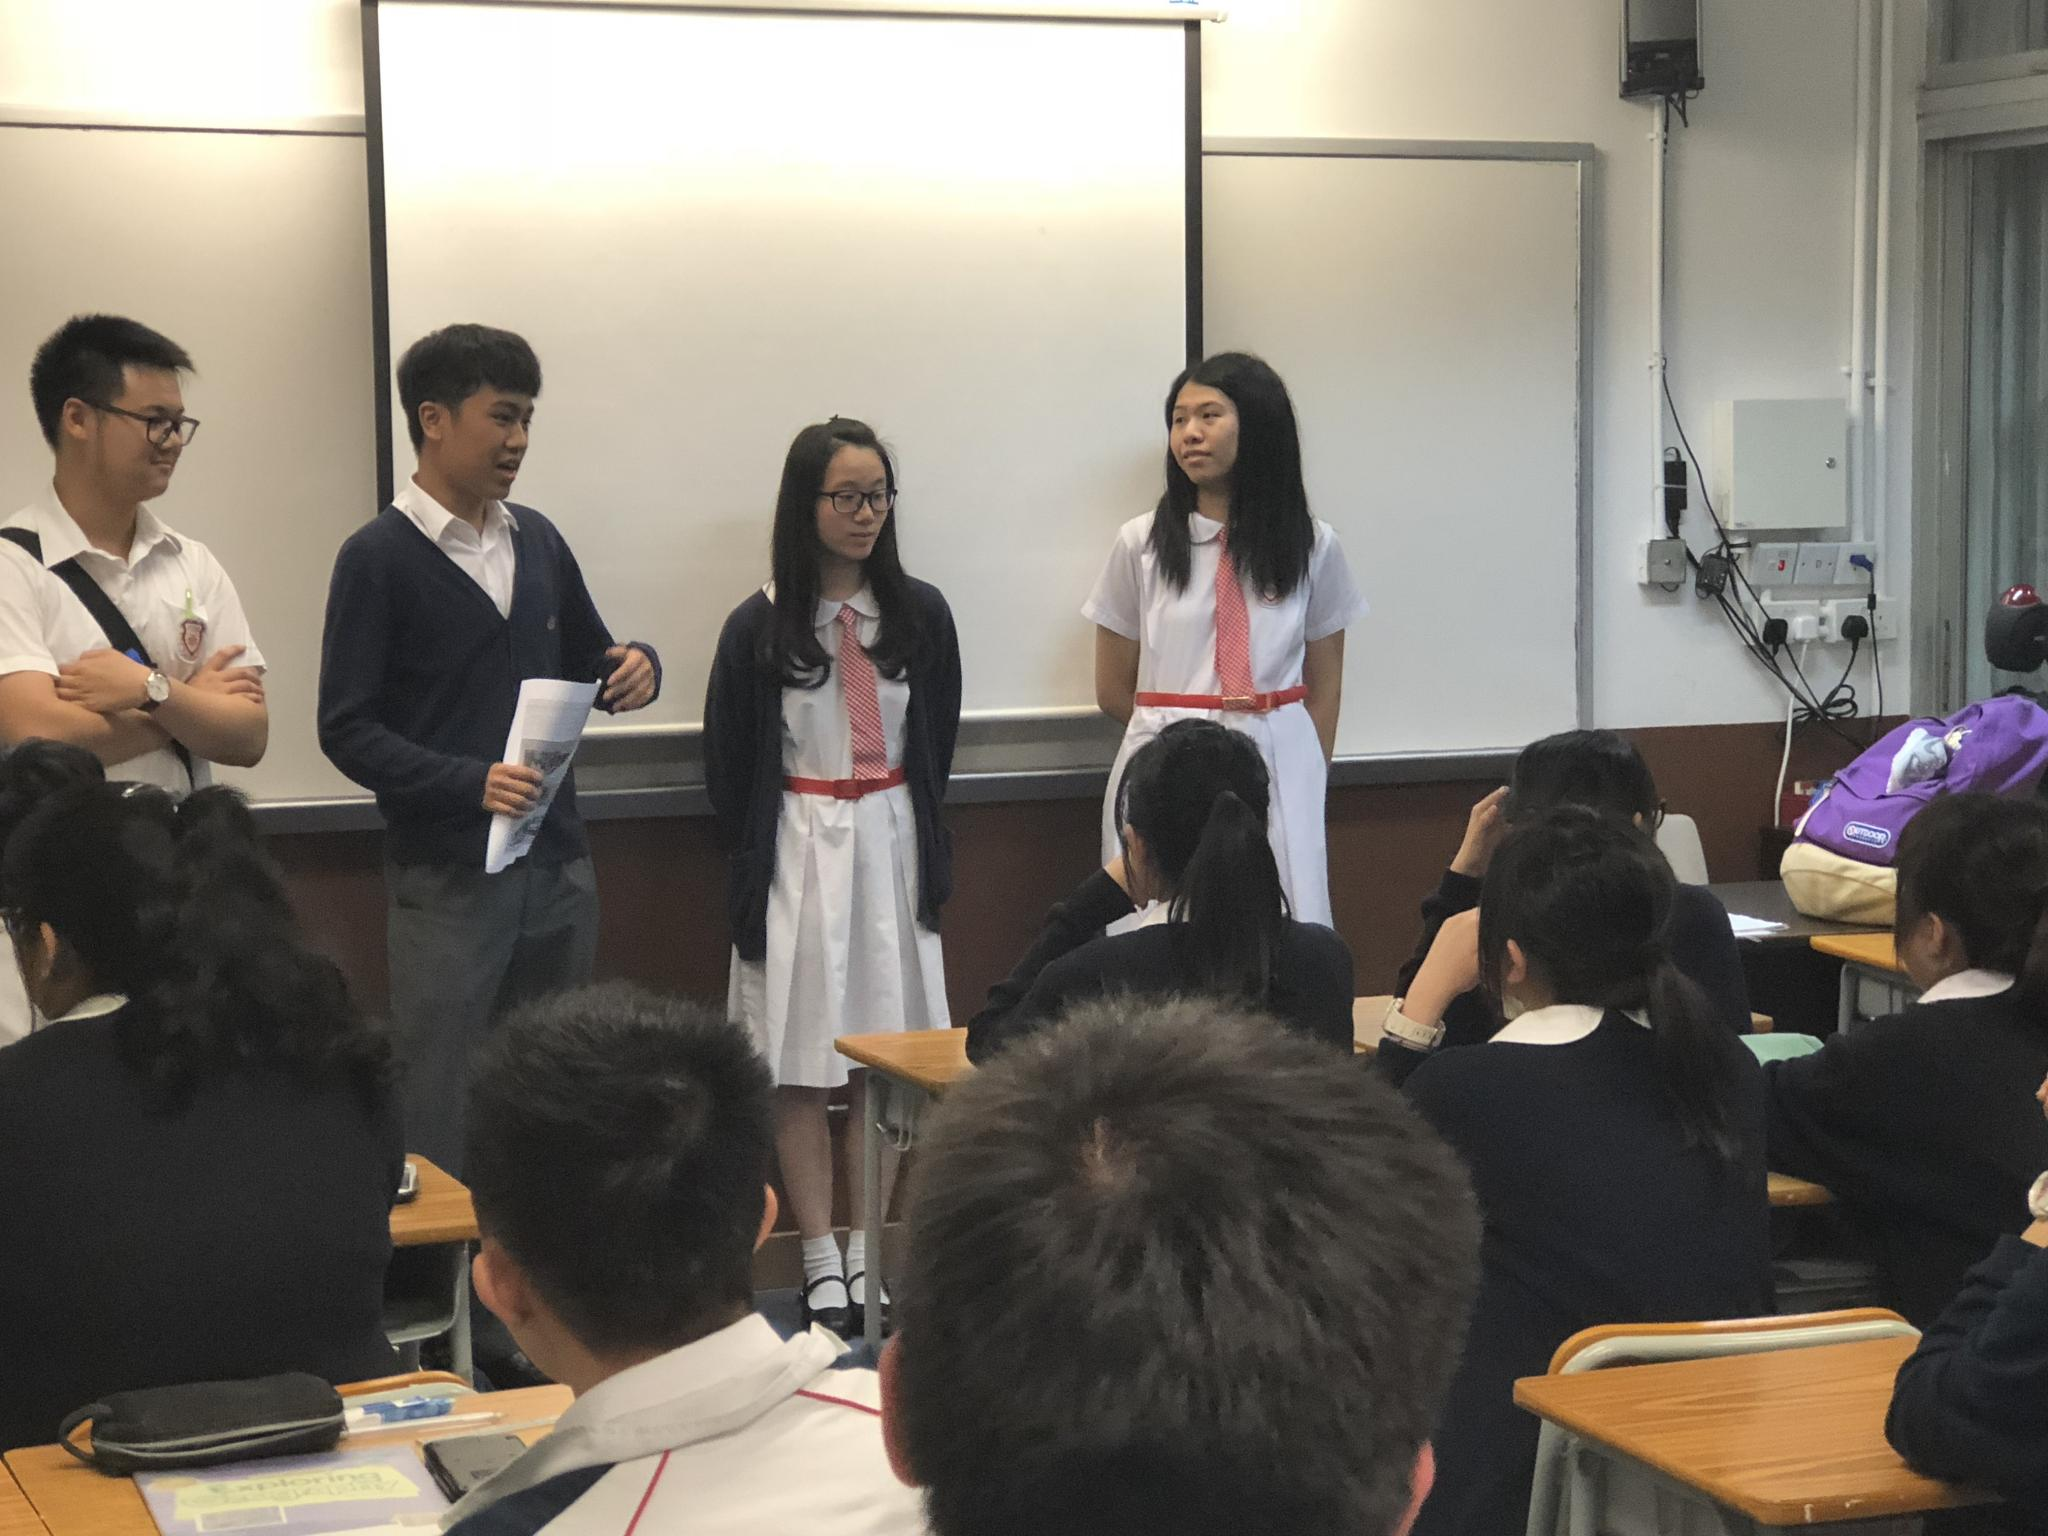 5A Chan Hei Lam and Tai Hiu Yi, 5D Chik Wai Chak and 5F Chu Kin Hang are giving students tips on studying Chinese History and Biology.